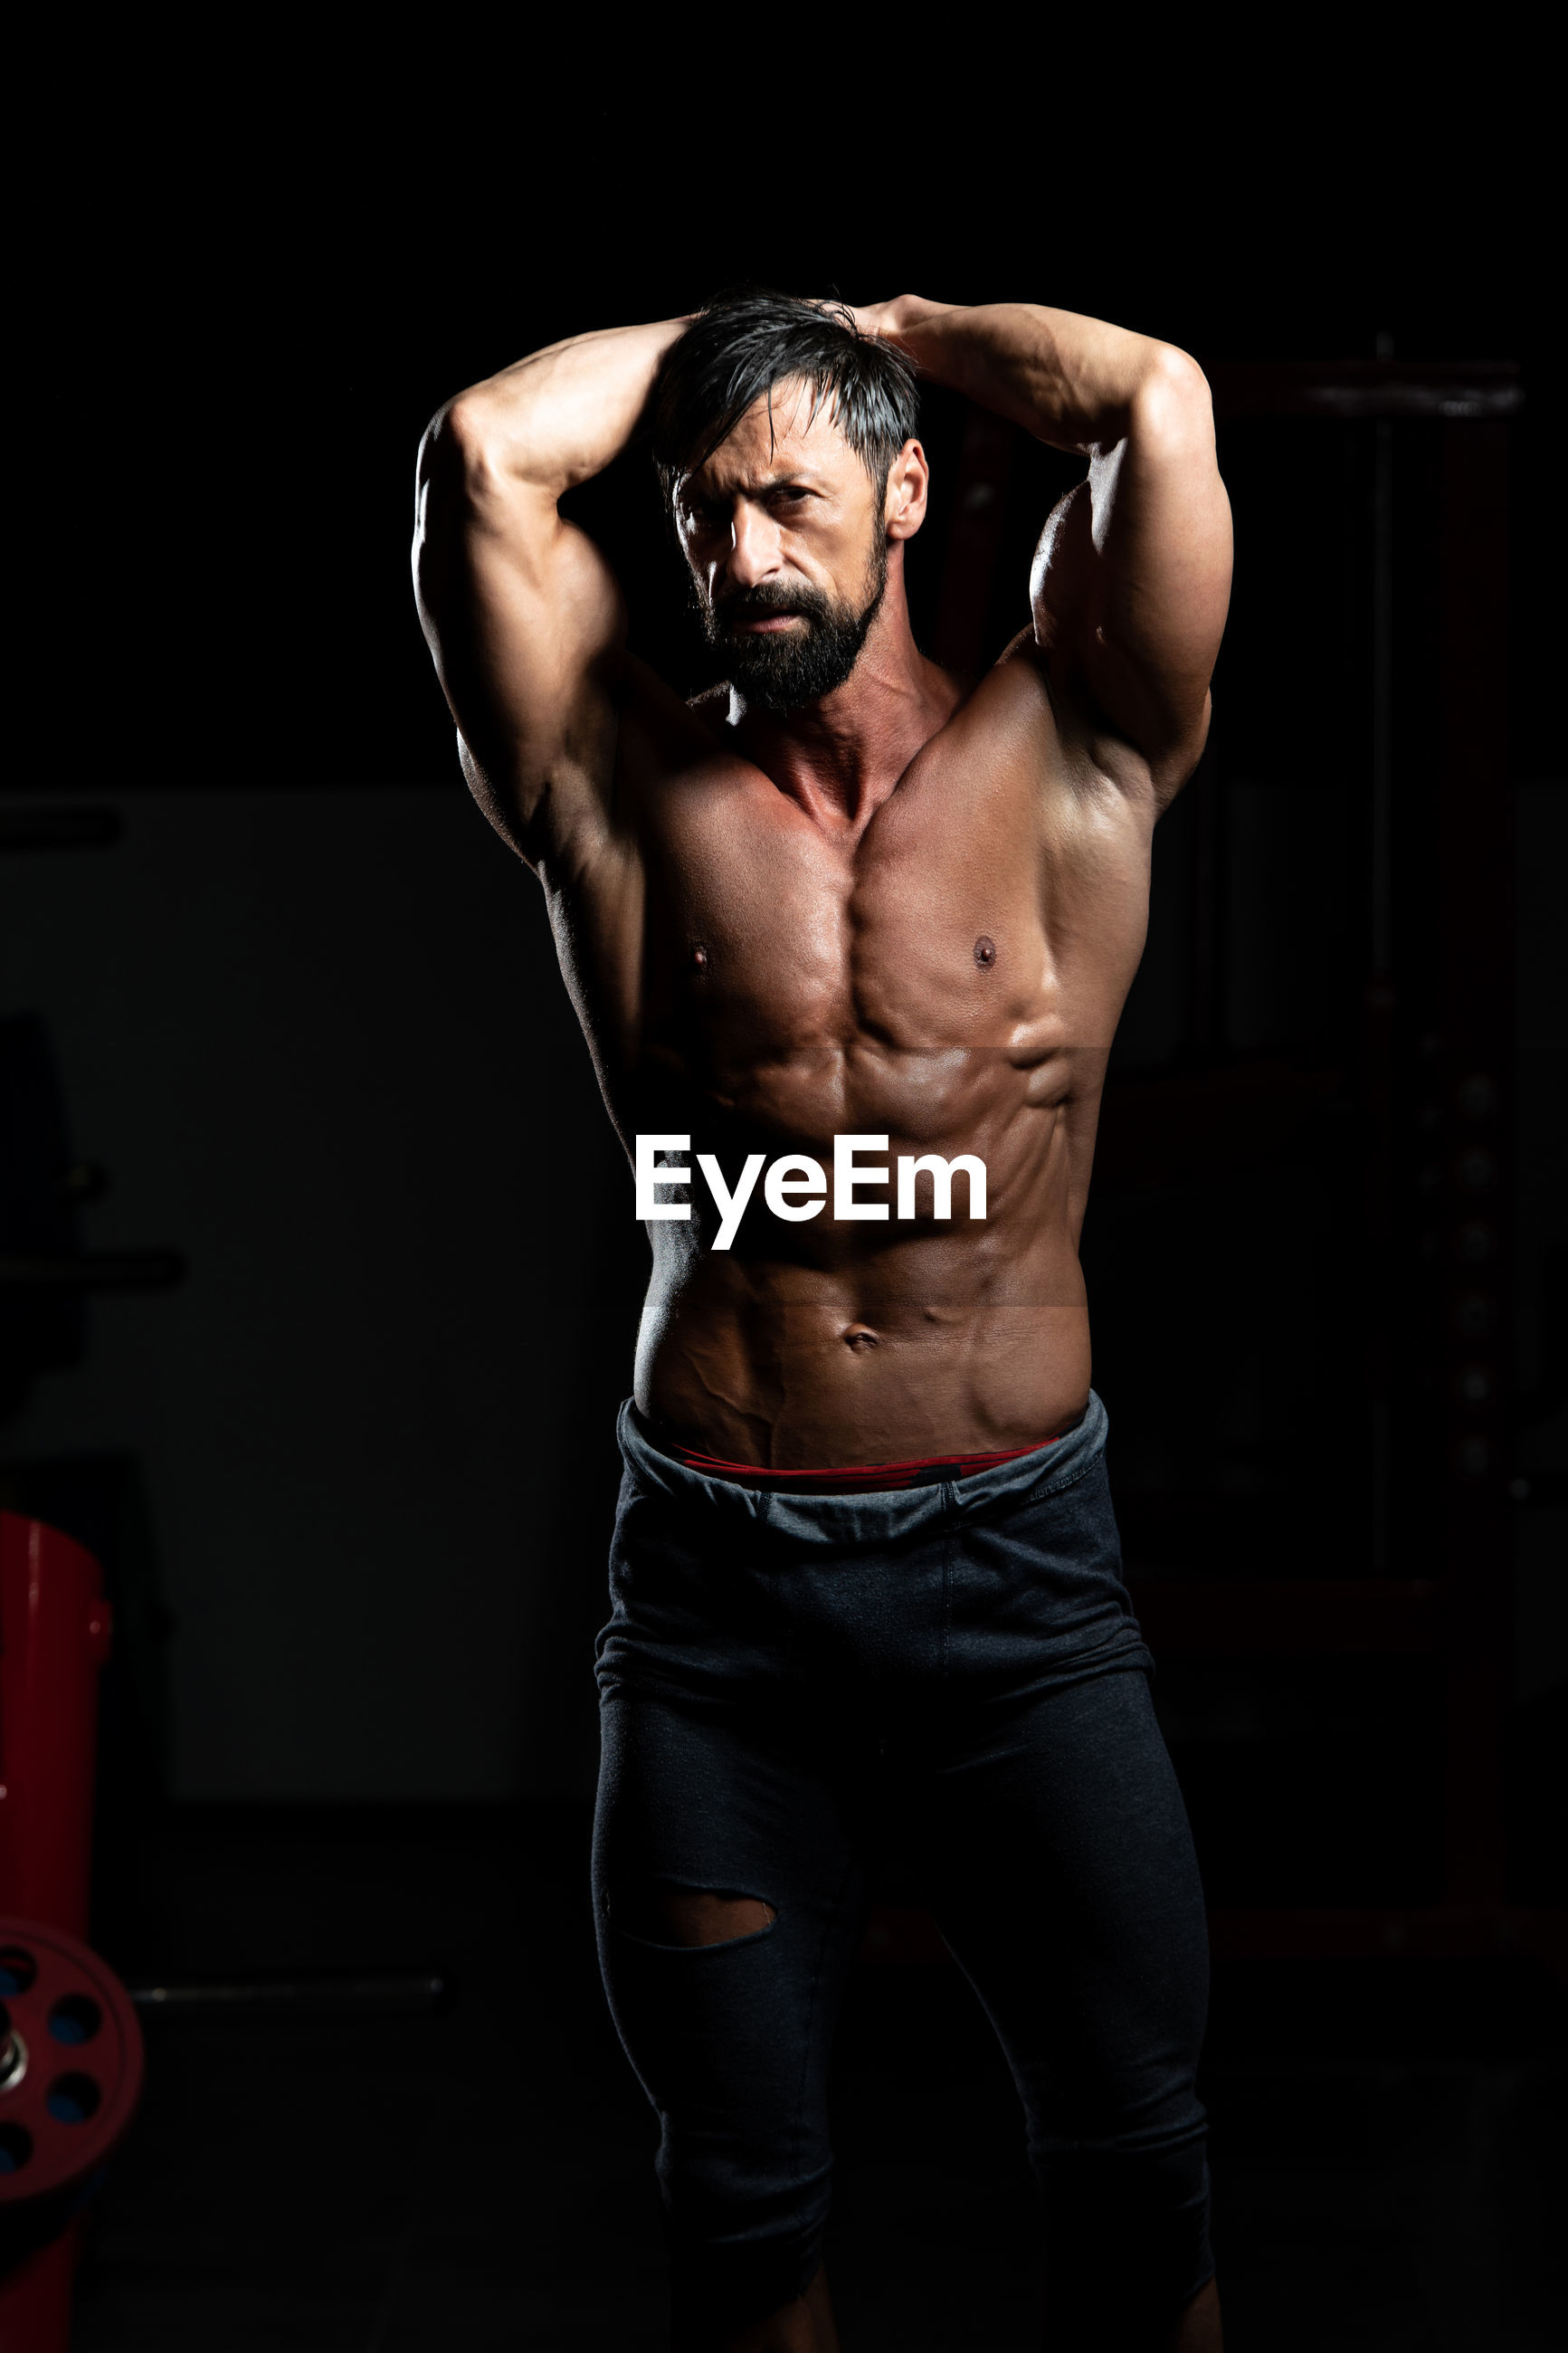 MIDSECTION OF SHIRTLESS MAN WEARING SUNGLASSES